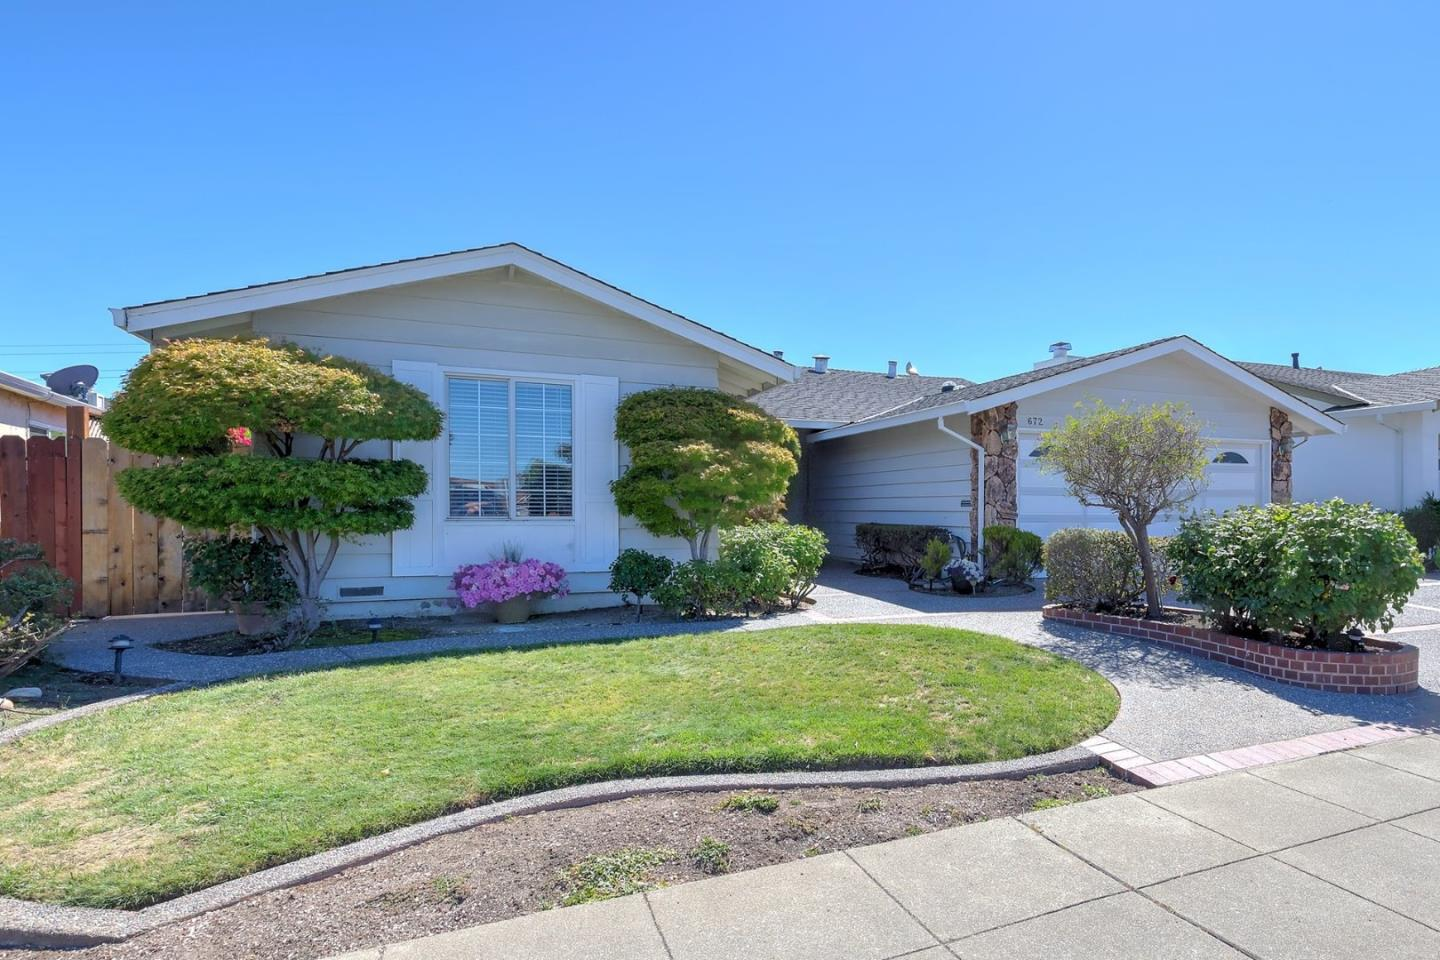 Single Family Home for Sale at 672 Harvester Drive Foster City, California 94404 United States